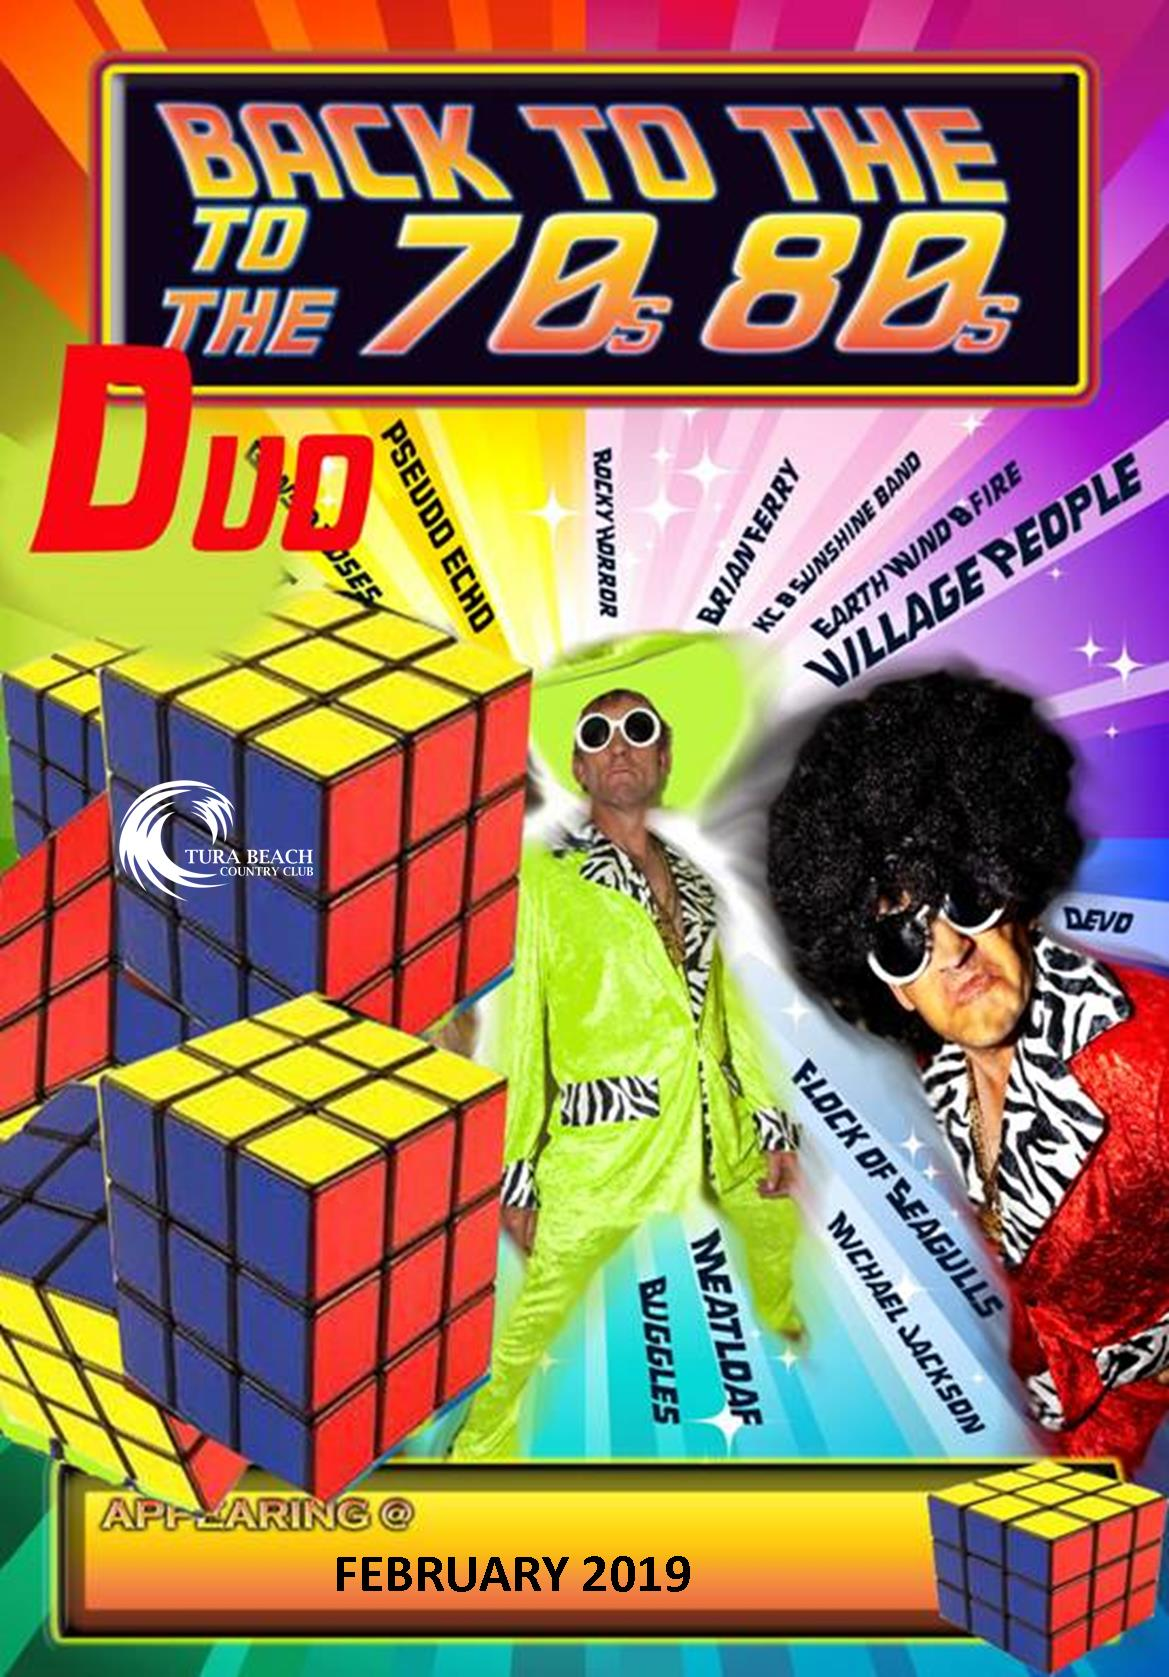 back to the 70s & 80s night - entertainment at Tura Beach country club